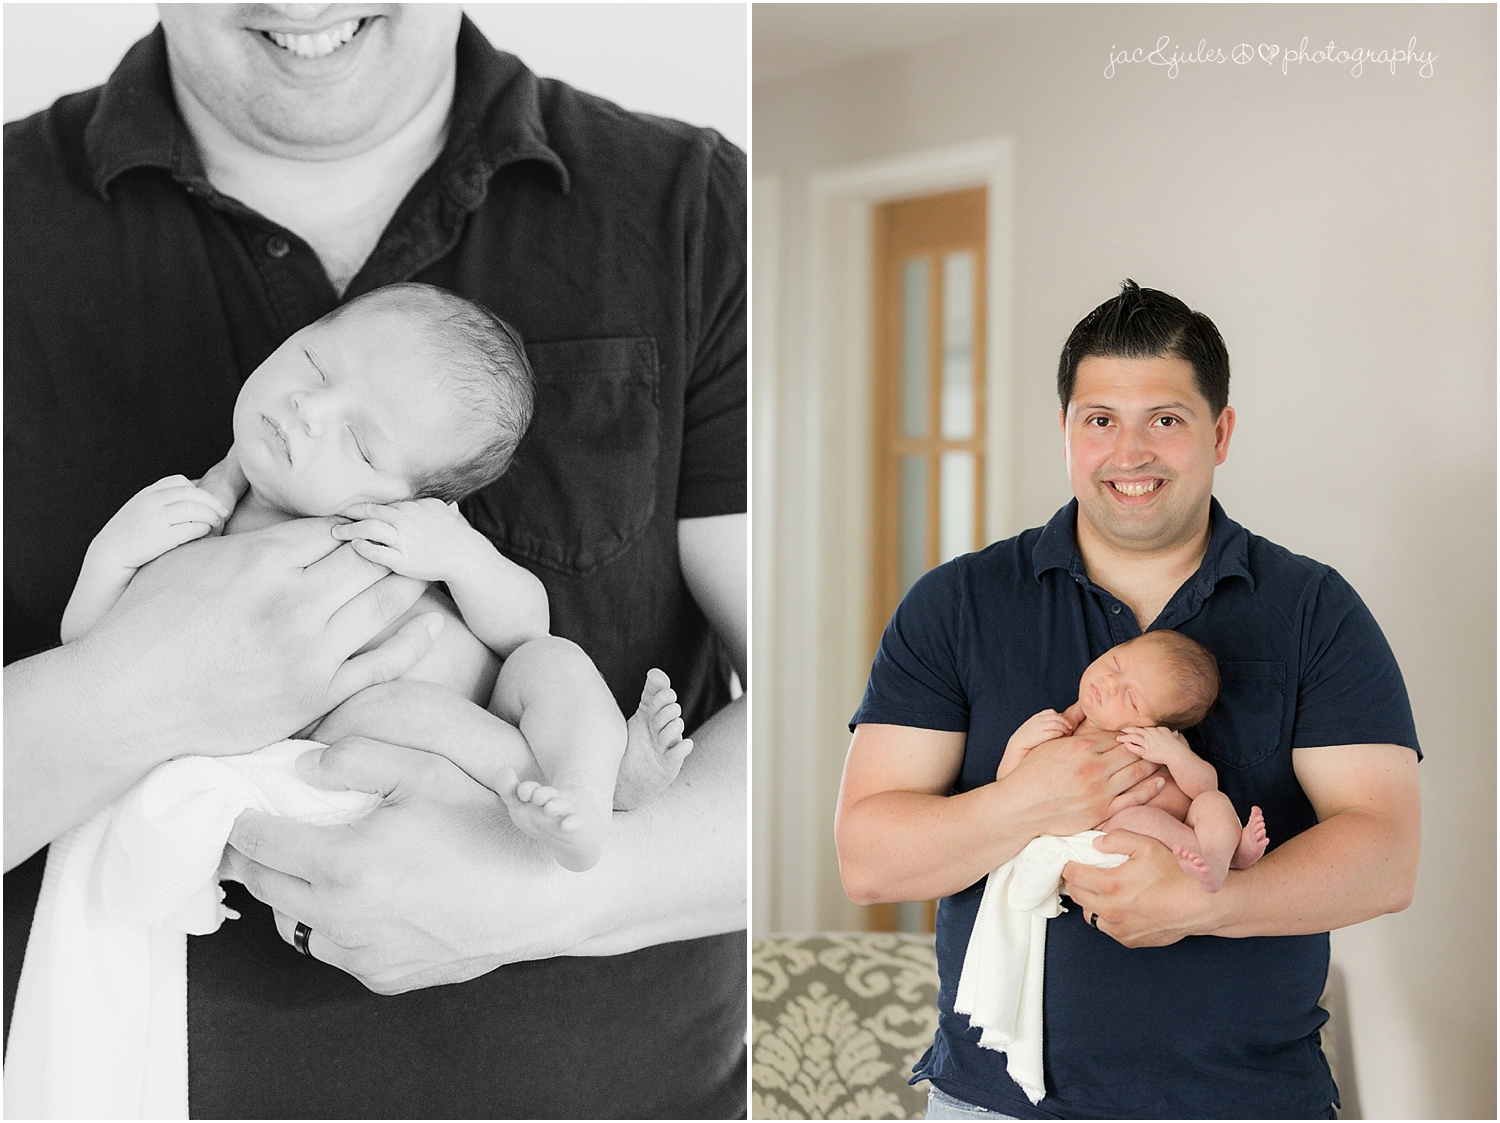 jacnjules photographs newborn baby boy at their home in monmouth county nj